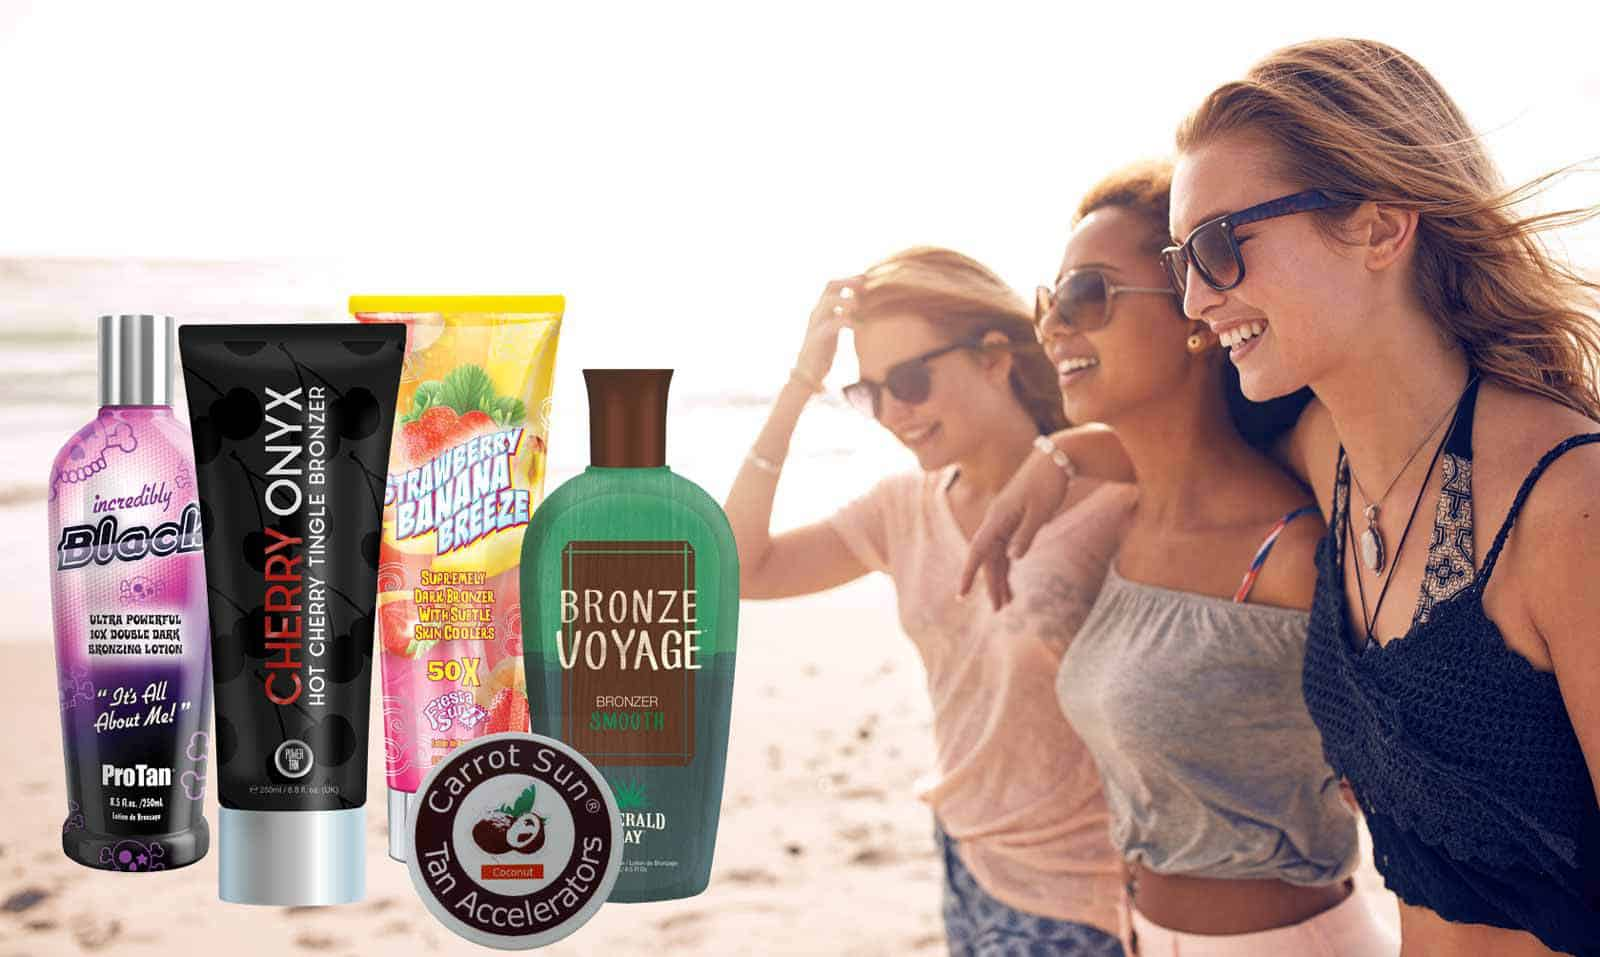 Best sunbed creams and tanning lotions for use within a sunbed.